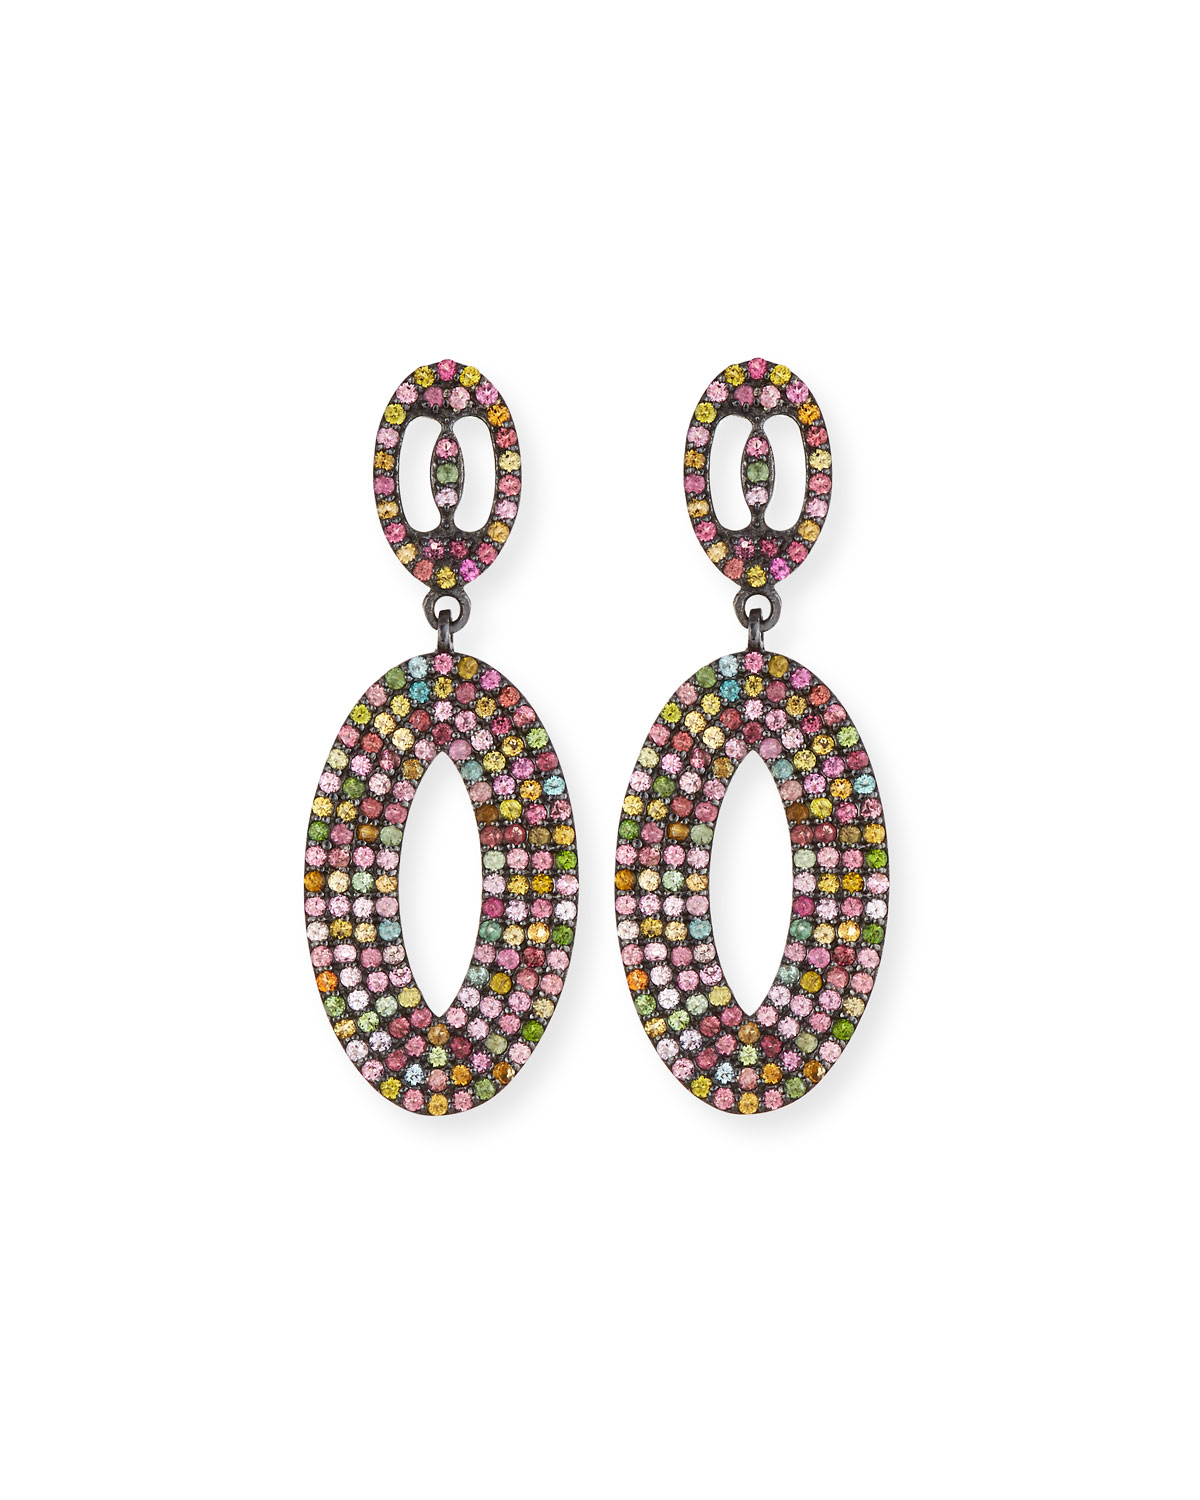 MARGO MORRISON Multicolor Tourmaline Loop Earrings in Multi Pattern